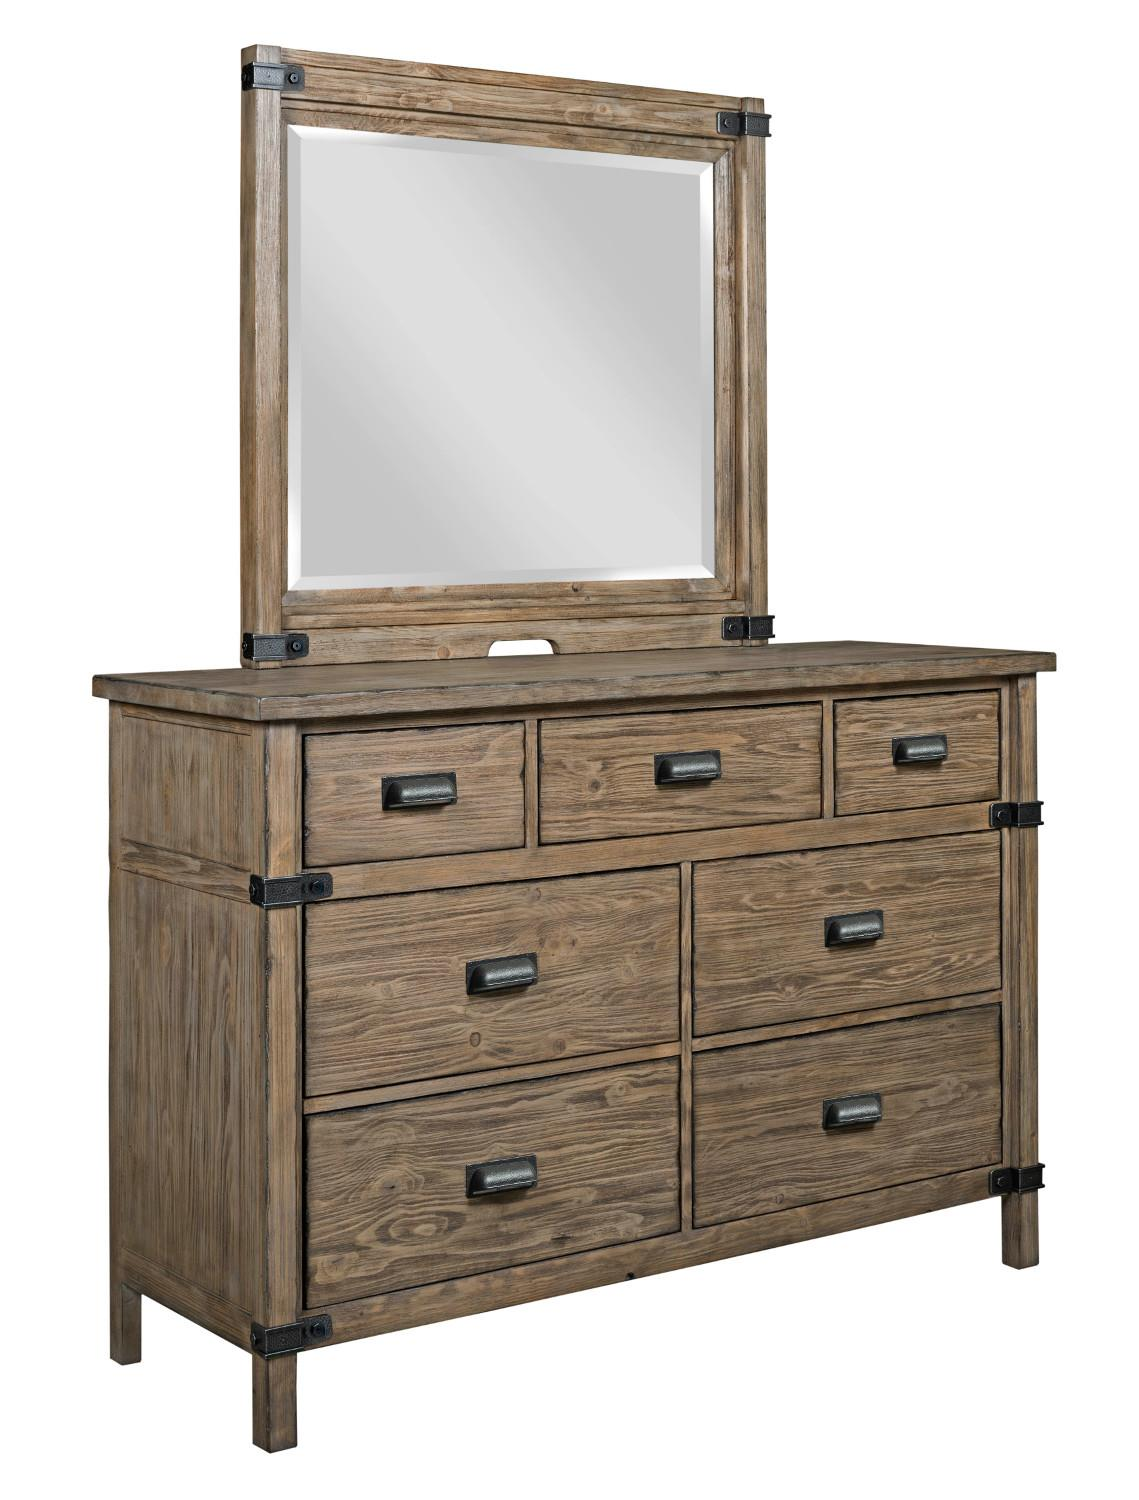 Foundry Bureau and Mirror Set at Stoney Creek Furniture